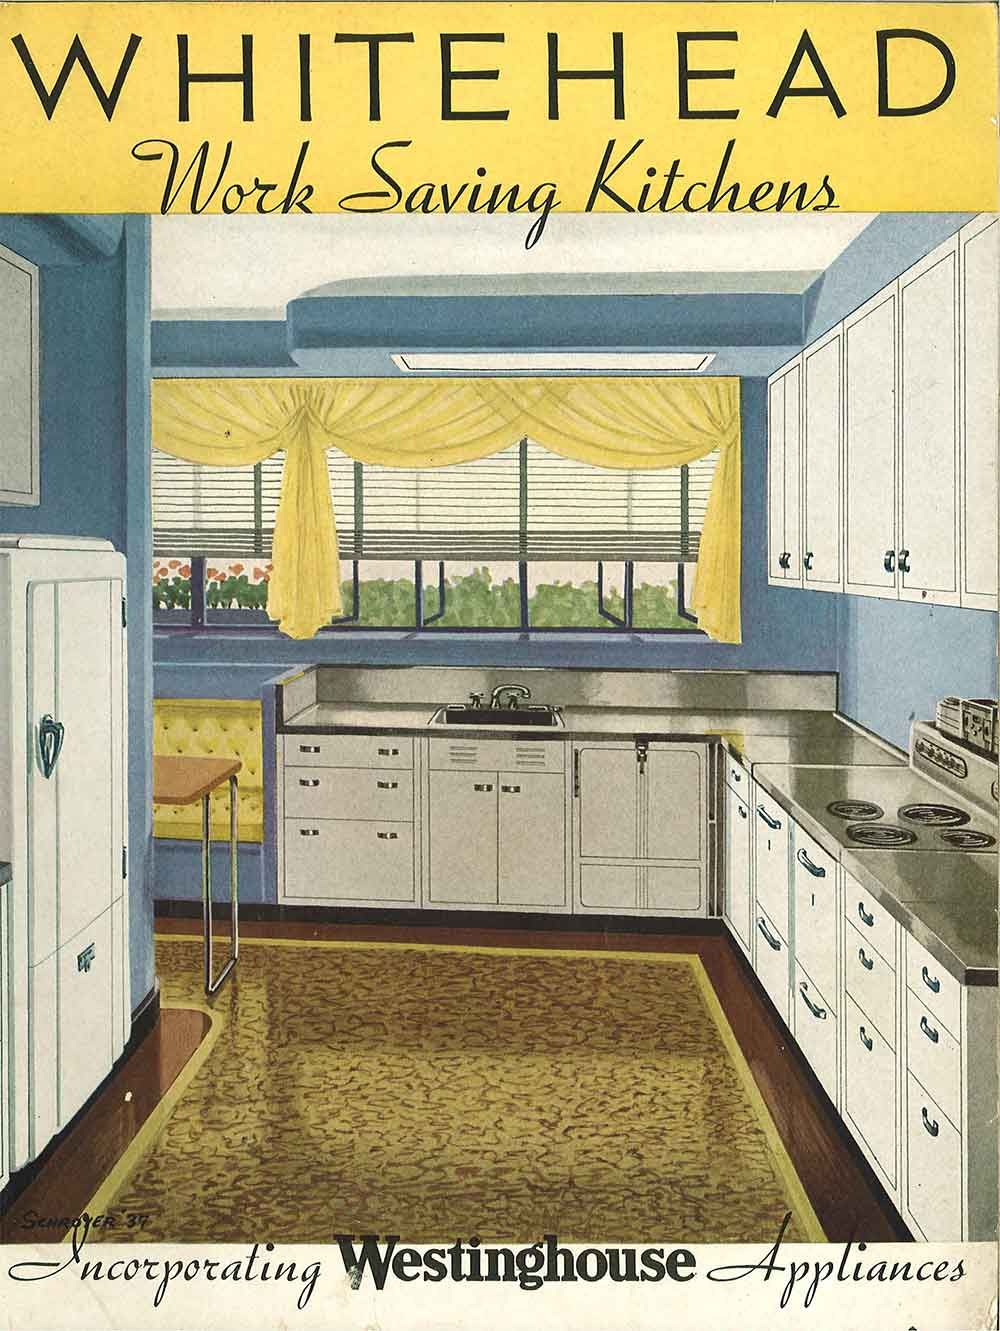 whitehead steel kitchen cabinets   20 page catalog from 1937 whitehead steel kitchen cabinets   20 page catalog from 1937      rh   pinterest co uk